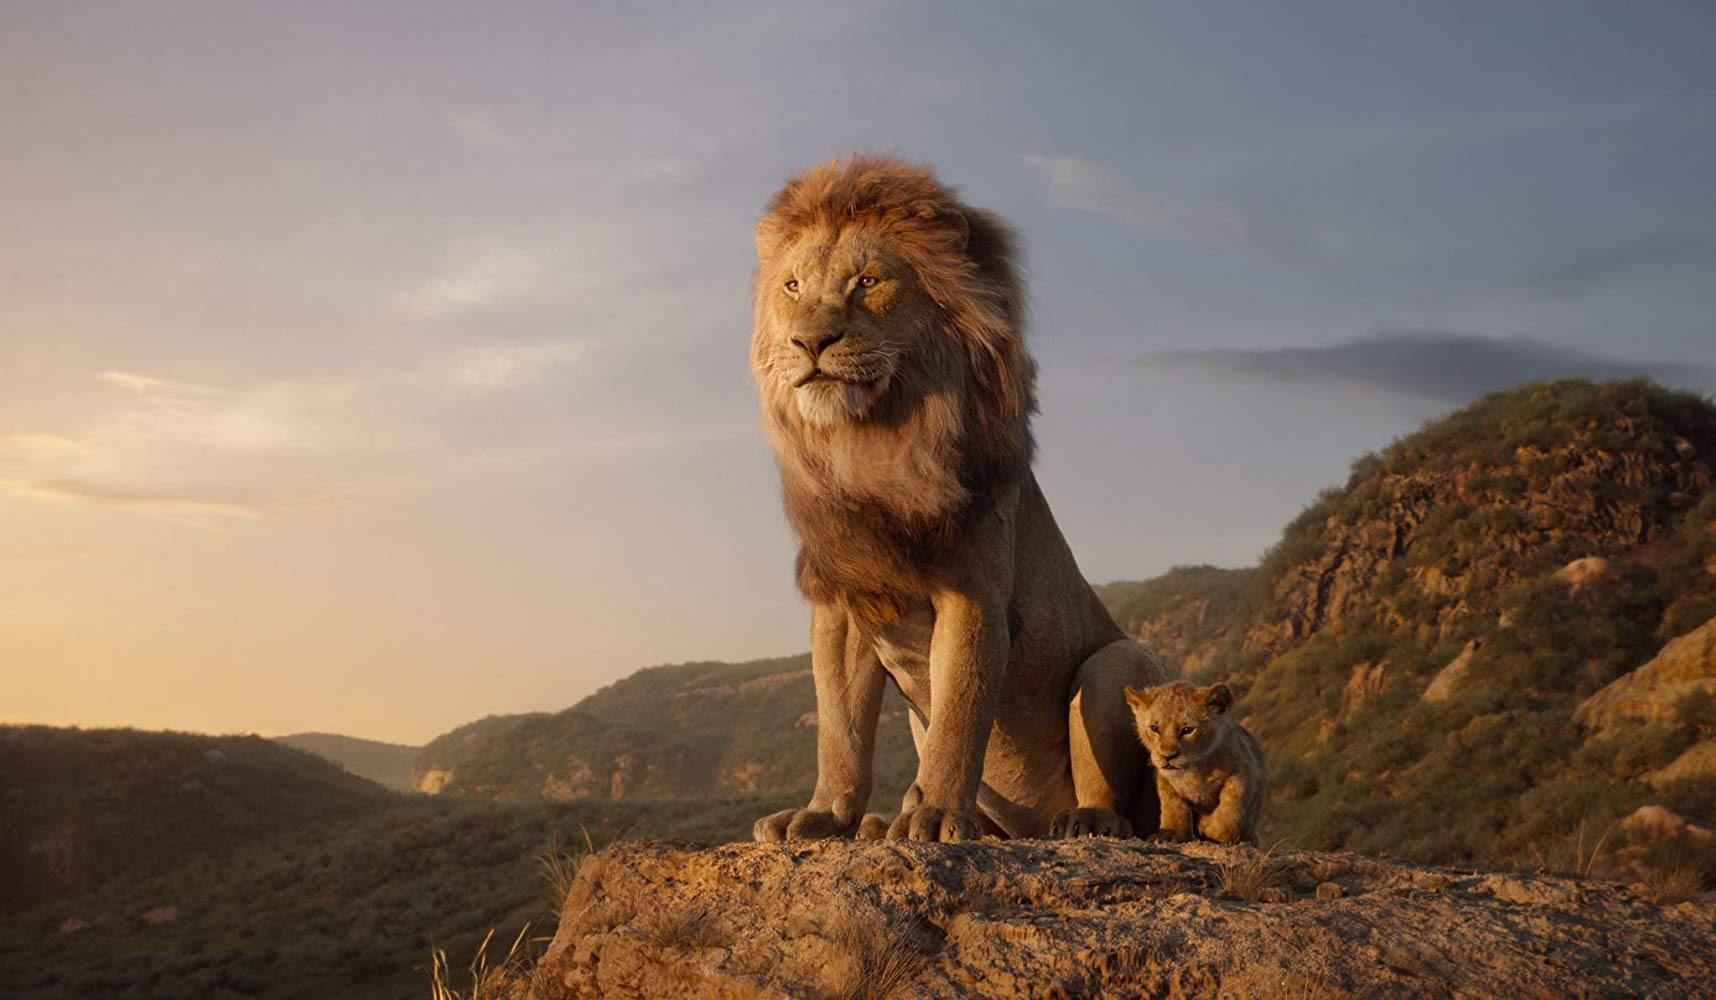 Enjoy exotic and fun '4DX Magical Savanna Riding' with 'The Lion King' 4DX